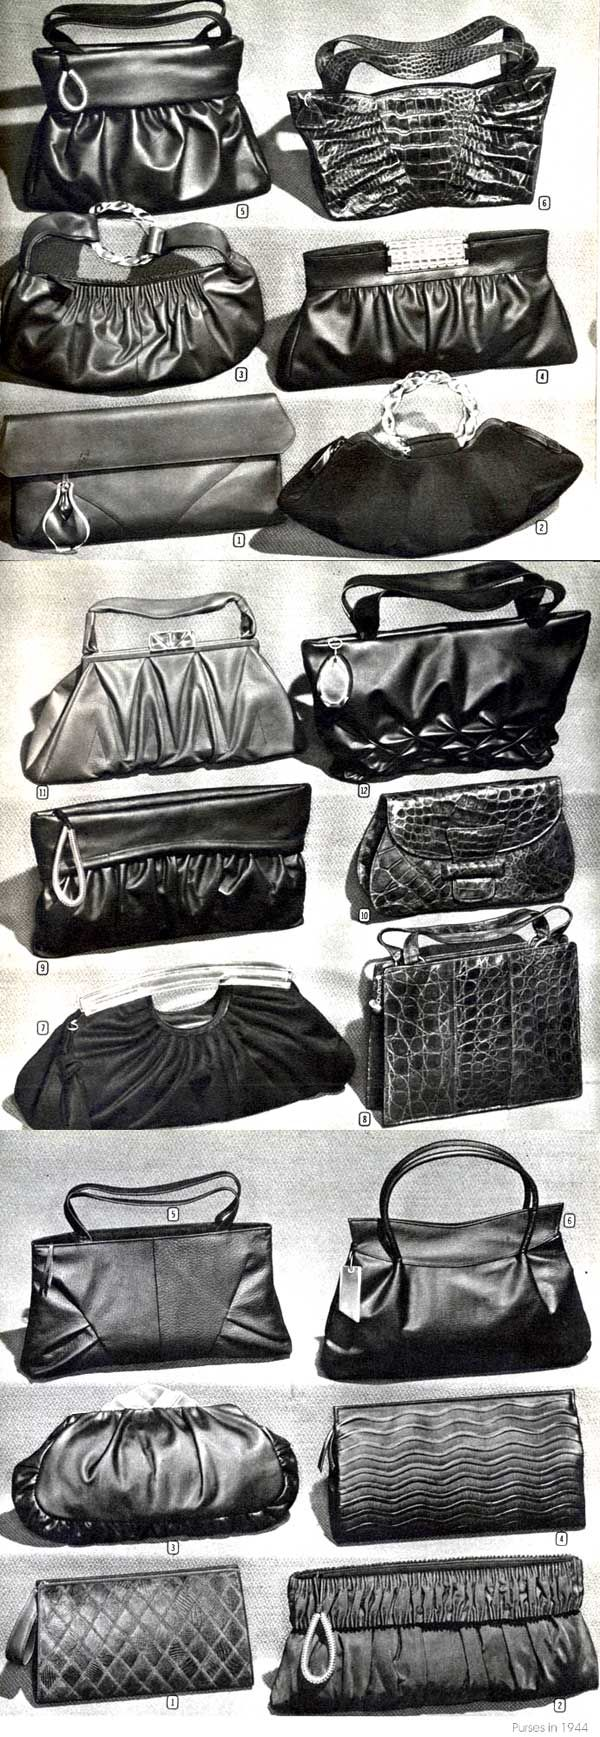 1940s Handbag Fashions purse catalogue photo illustration vintage style war era bag clutch handle cloth leather